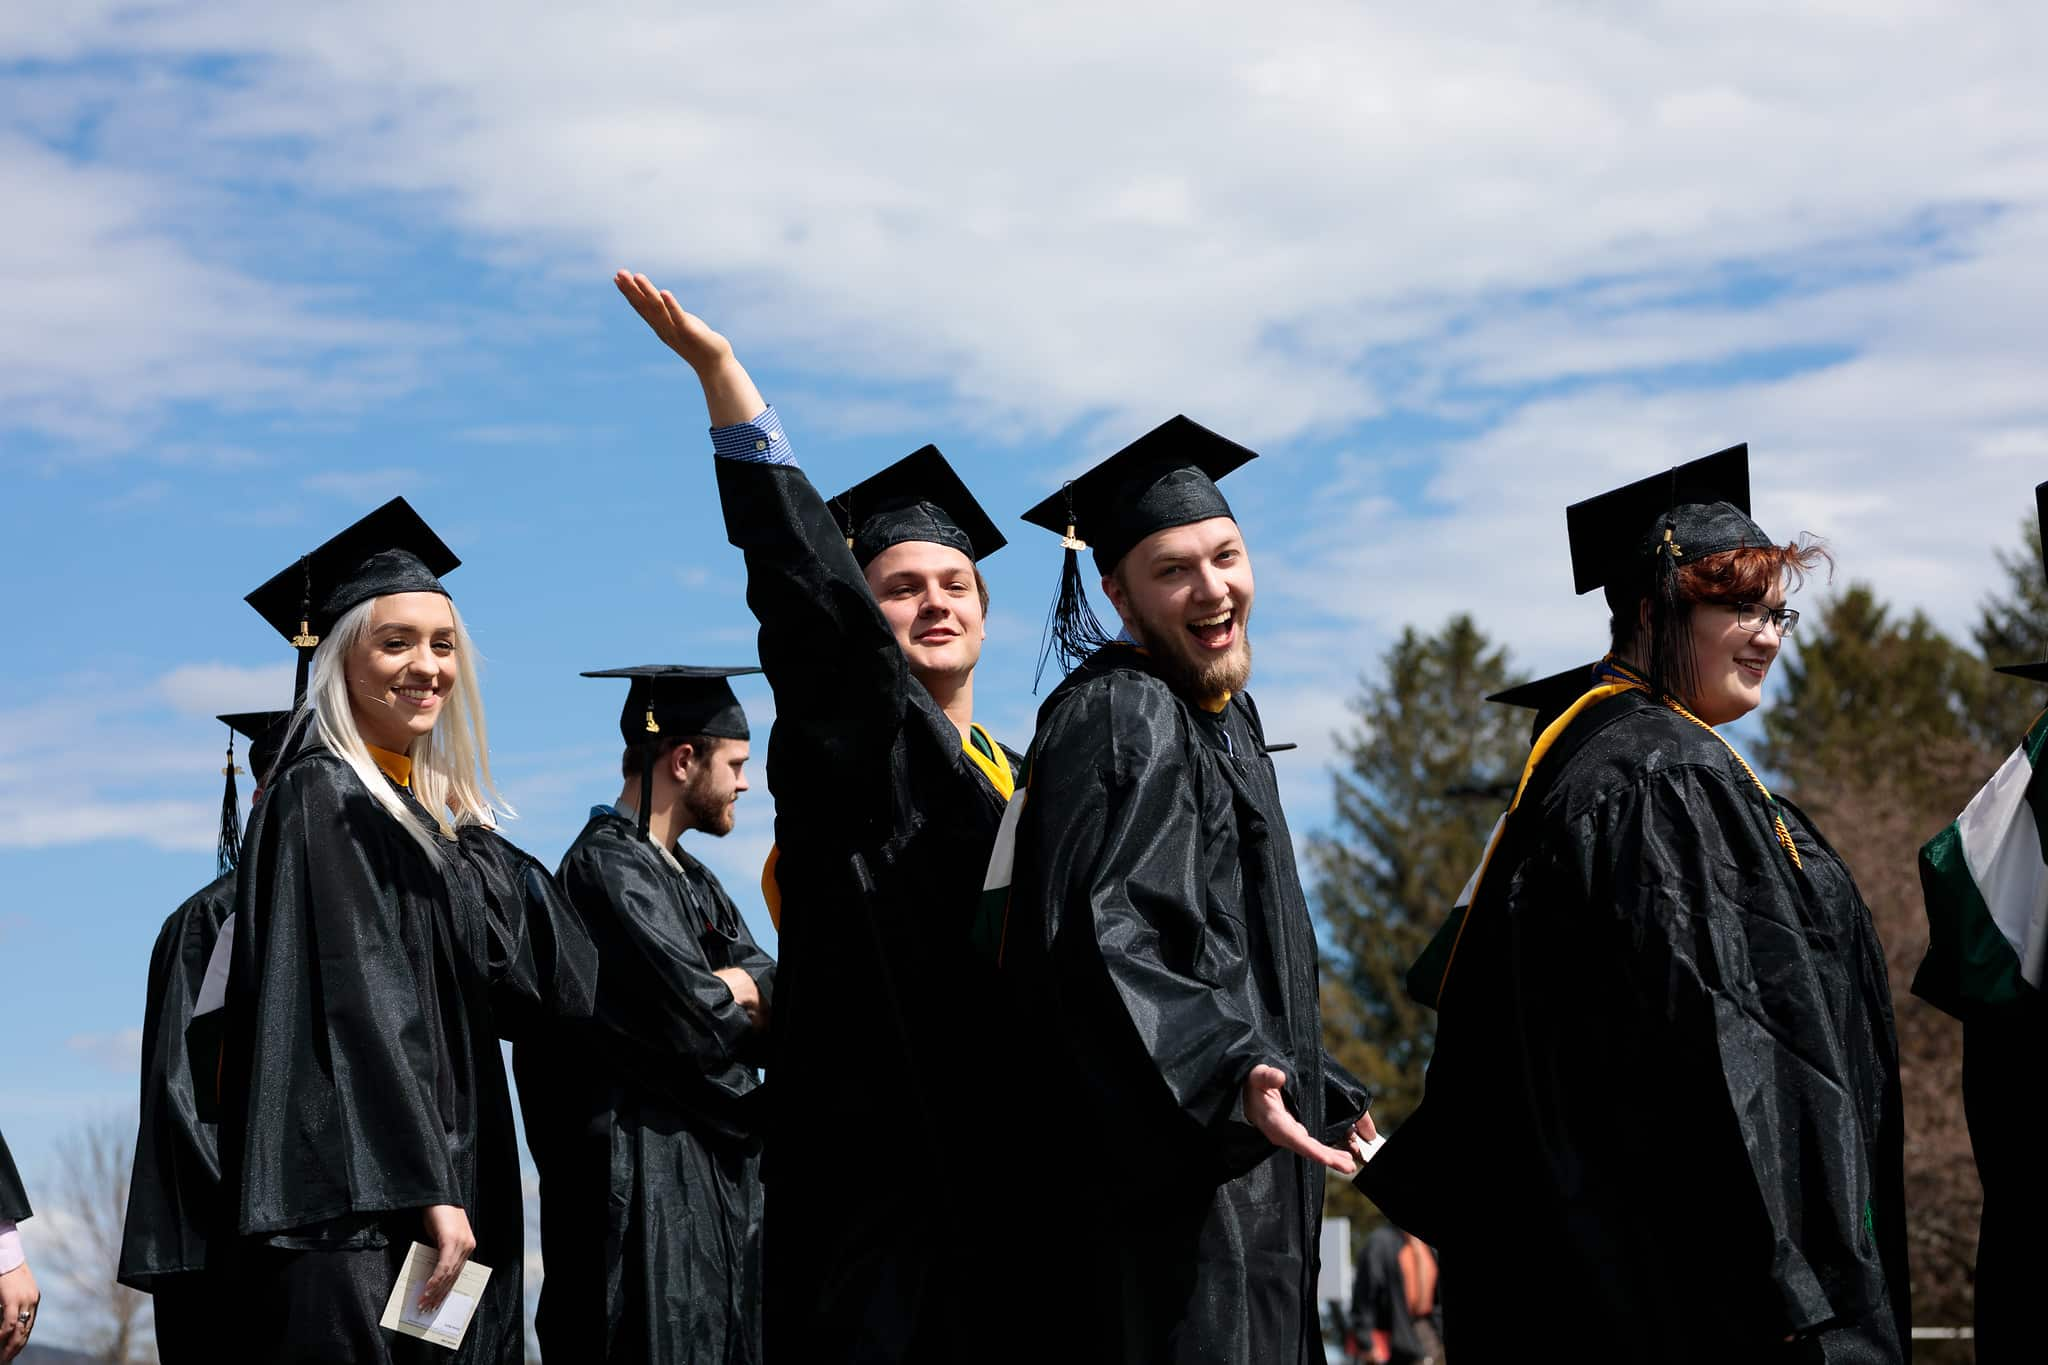 A recent Vermont Tech grad is waving as he processes with his fellow graduates in the graduation ceremony, wearing regalia